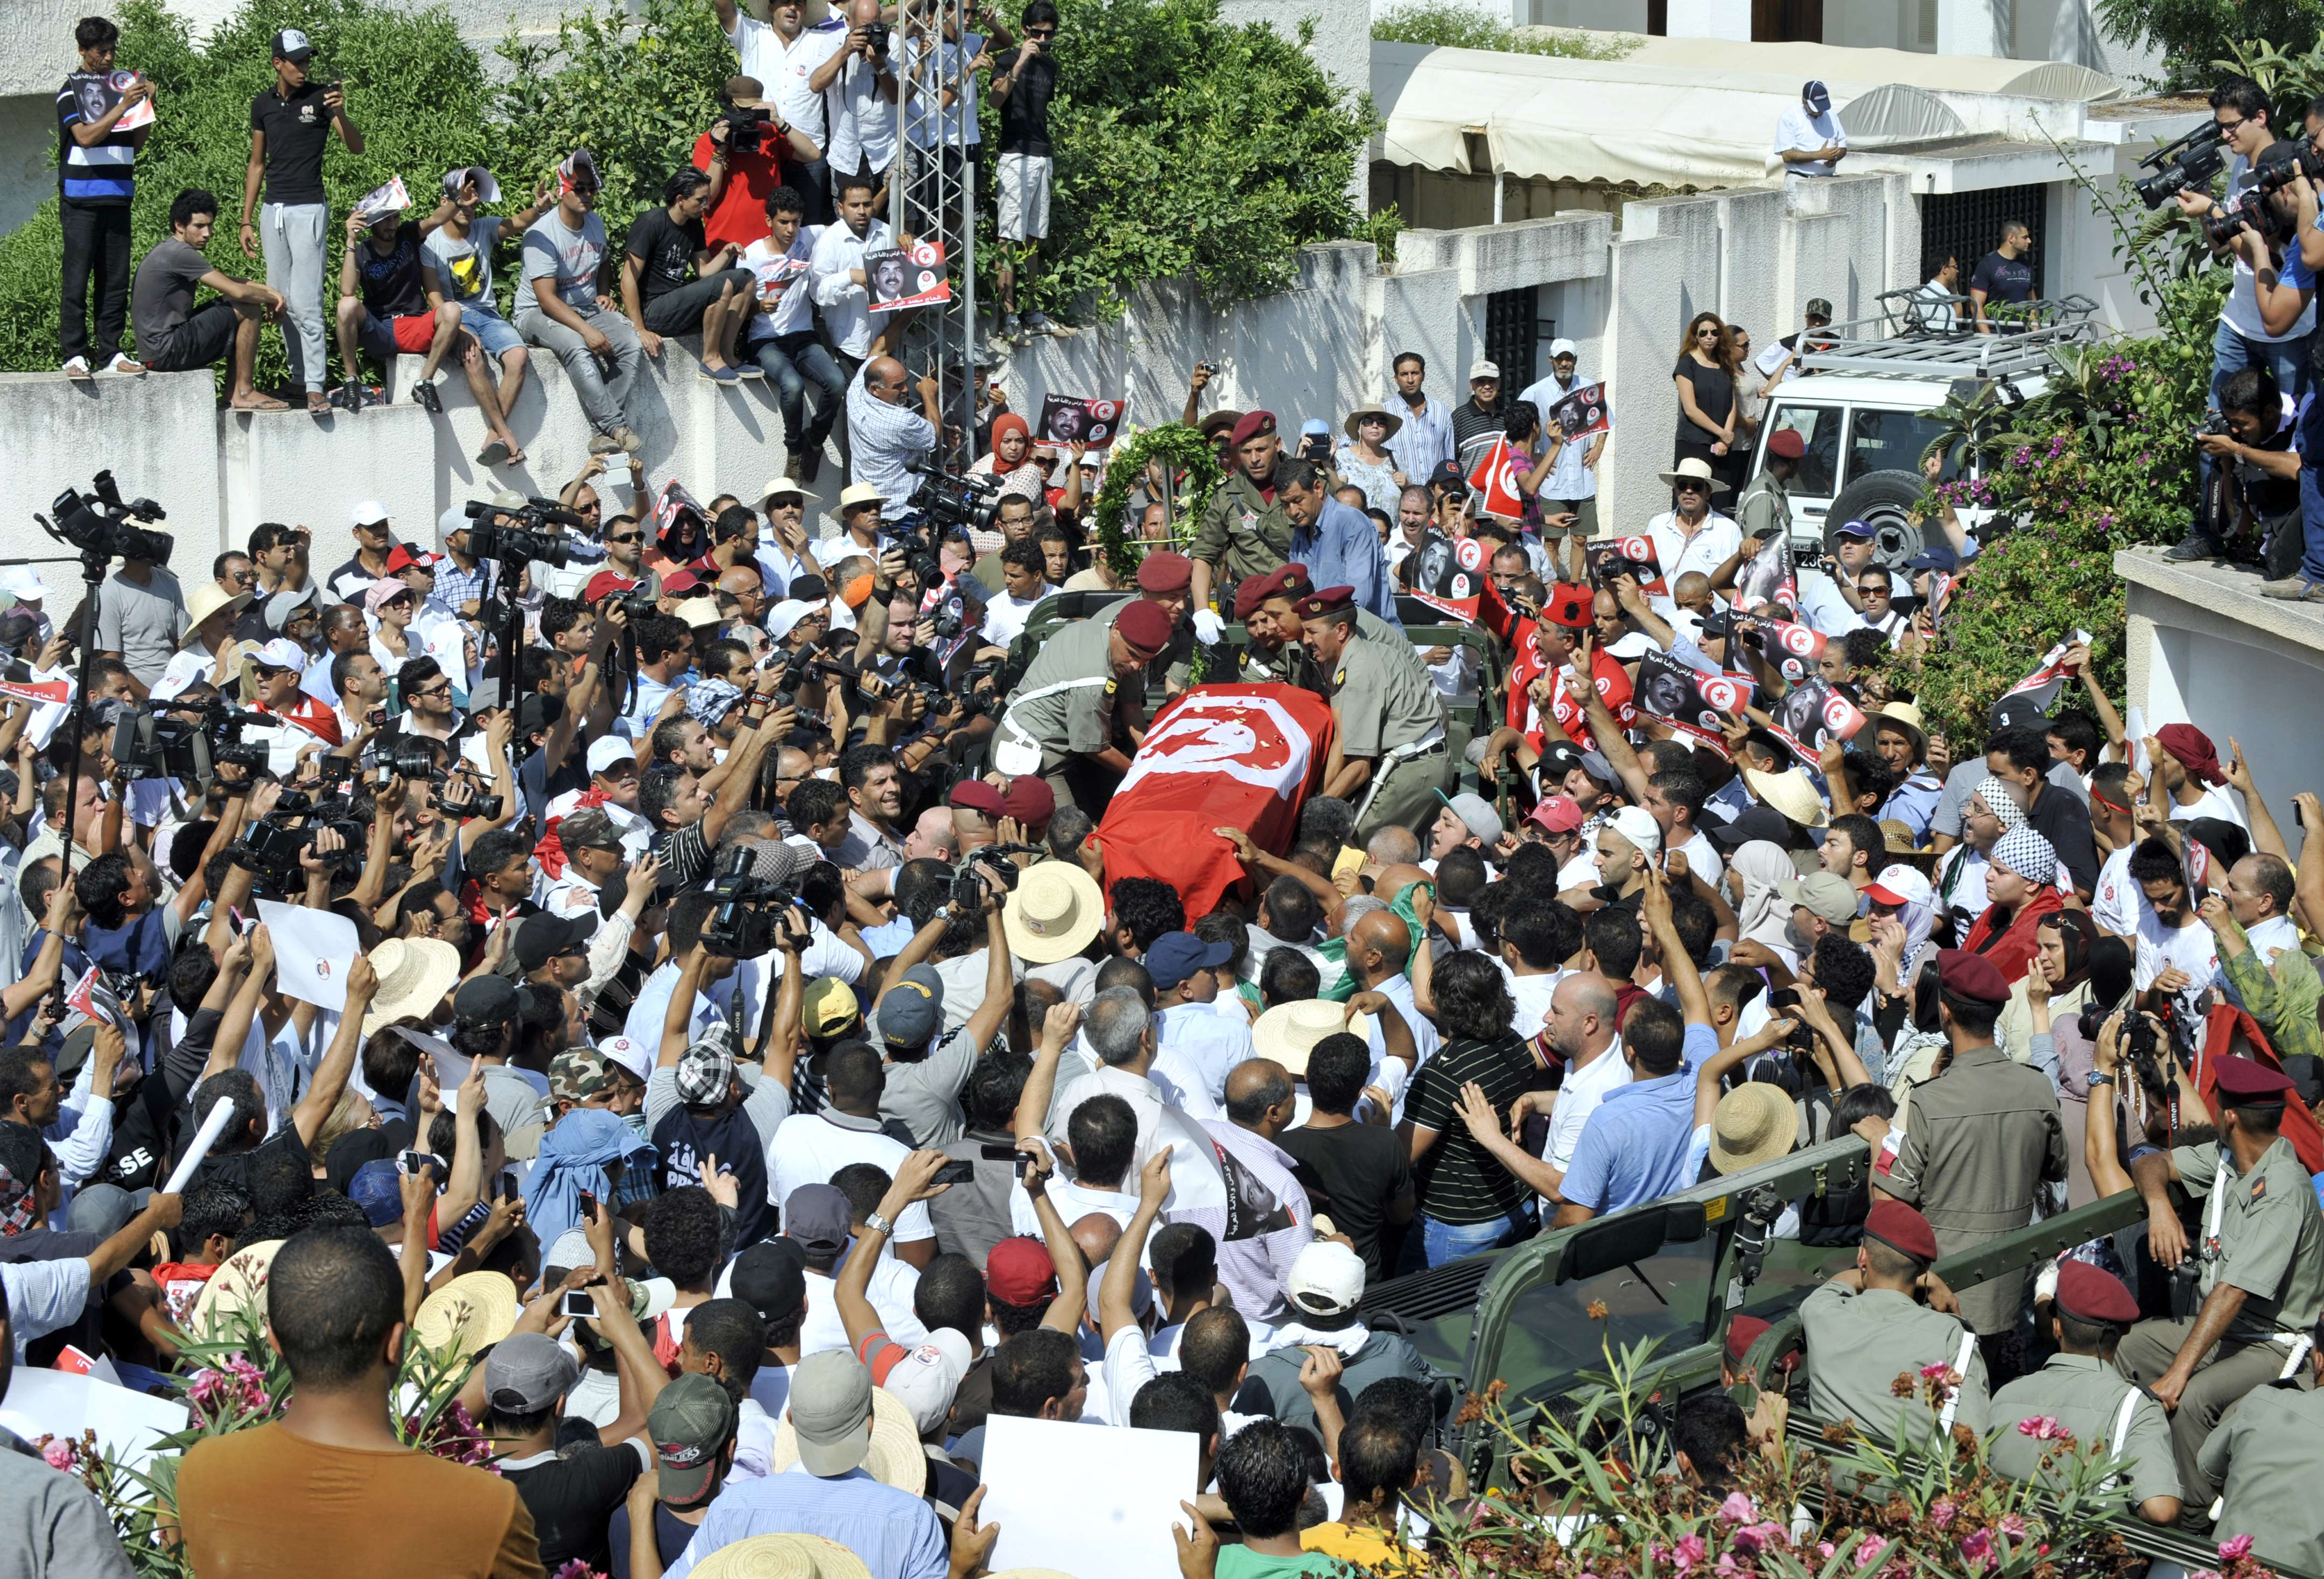 Tunisian soldiers load the coffin of assassinated opposition leader Mohamed Brahmi as his funeral procession takes place under military escort on July 27, 2013 in Tunis. (AFP Photo)